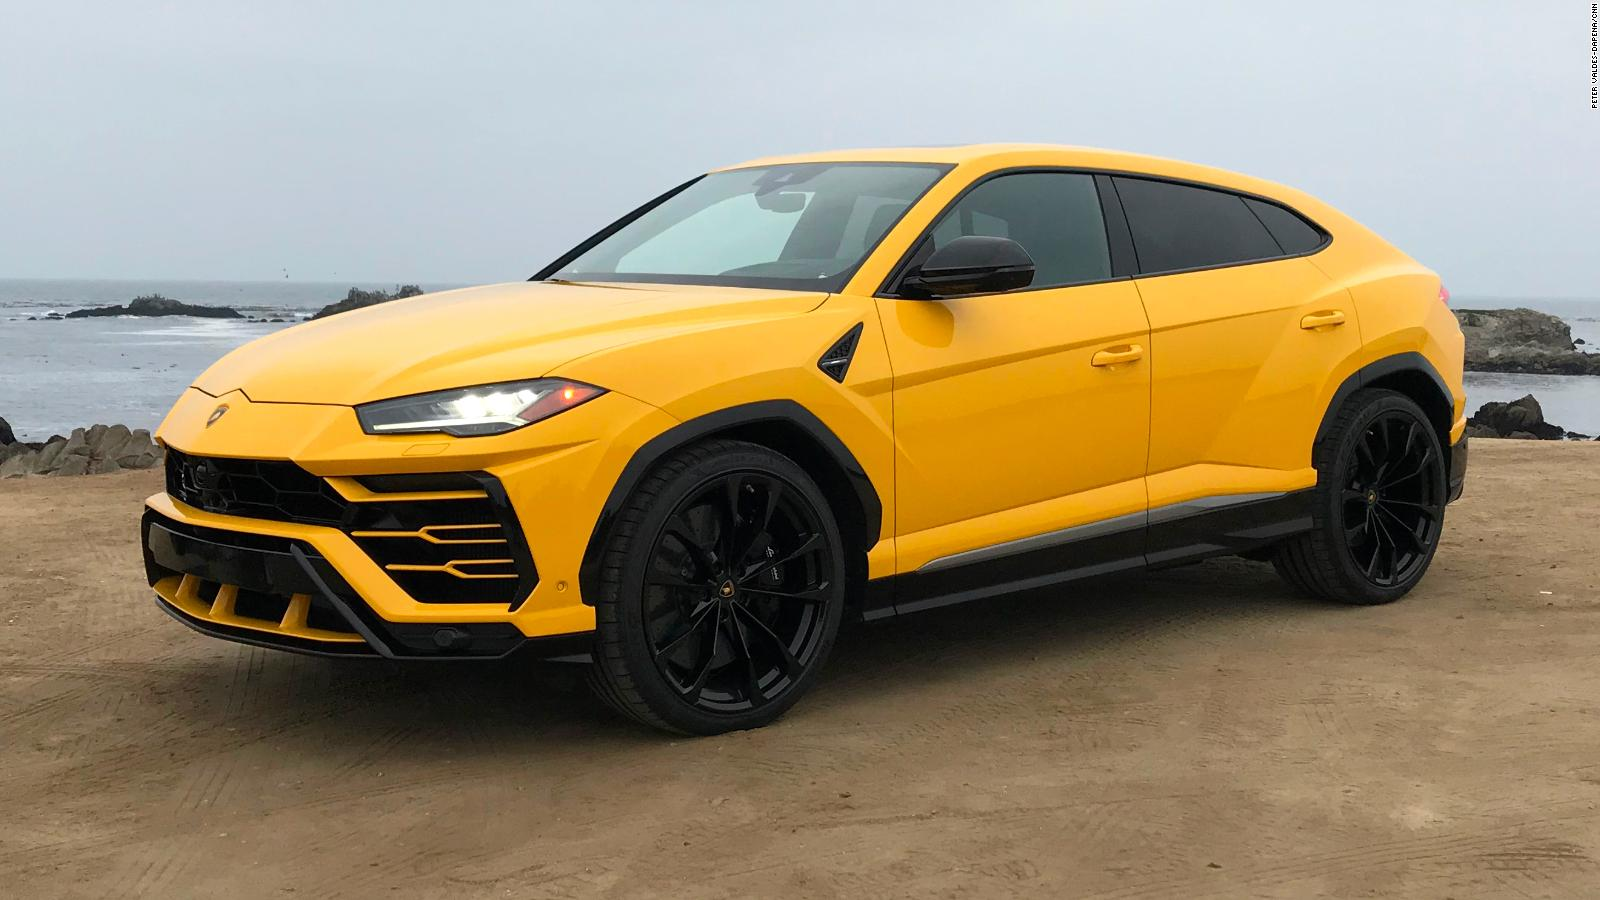 Lamborghini Urus: Looks Like An SUV, Drives Like A Supercar   CNN